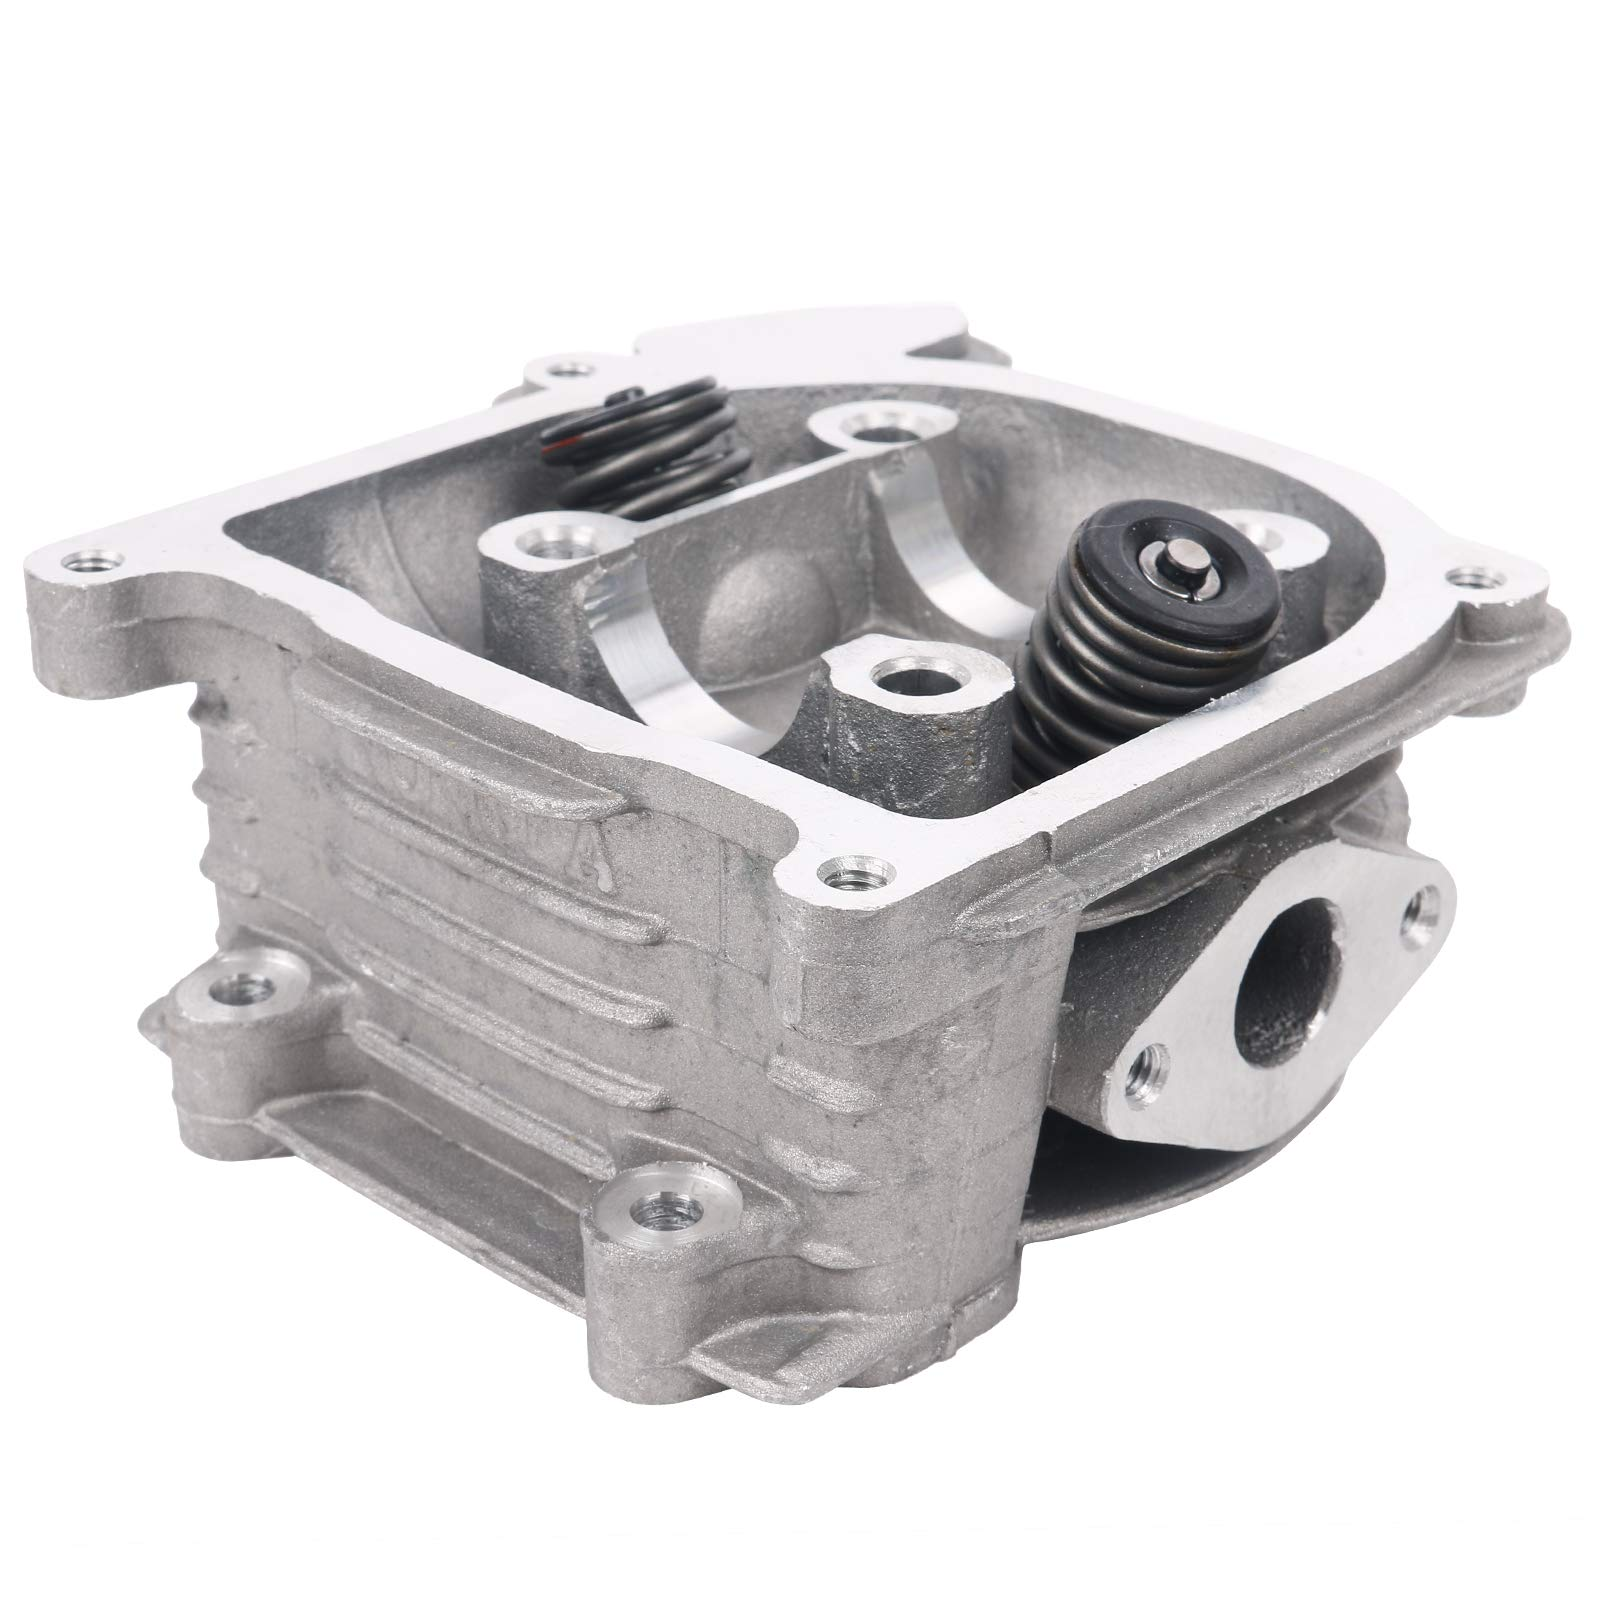 Glixal GY6 49cc 50cc to 100cc Chinese Scooter Engine 50mm Cylinder Head Assy for 139QMB 139QMA Moped ATV Quad Go Kart (69mm Valves, Non EGR Type) by Glixal